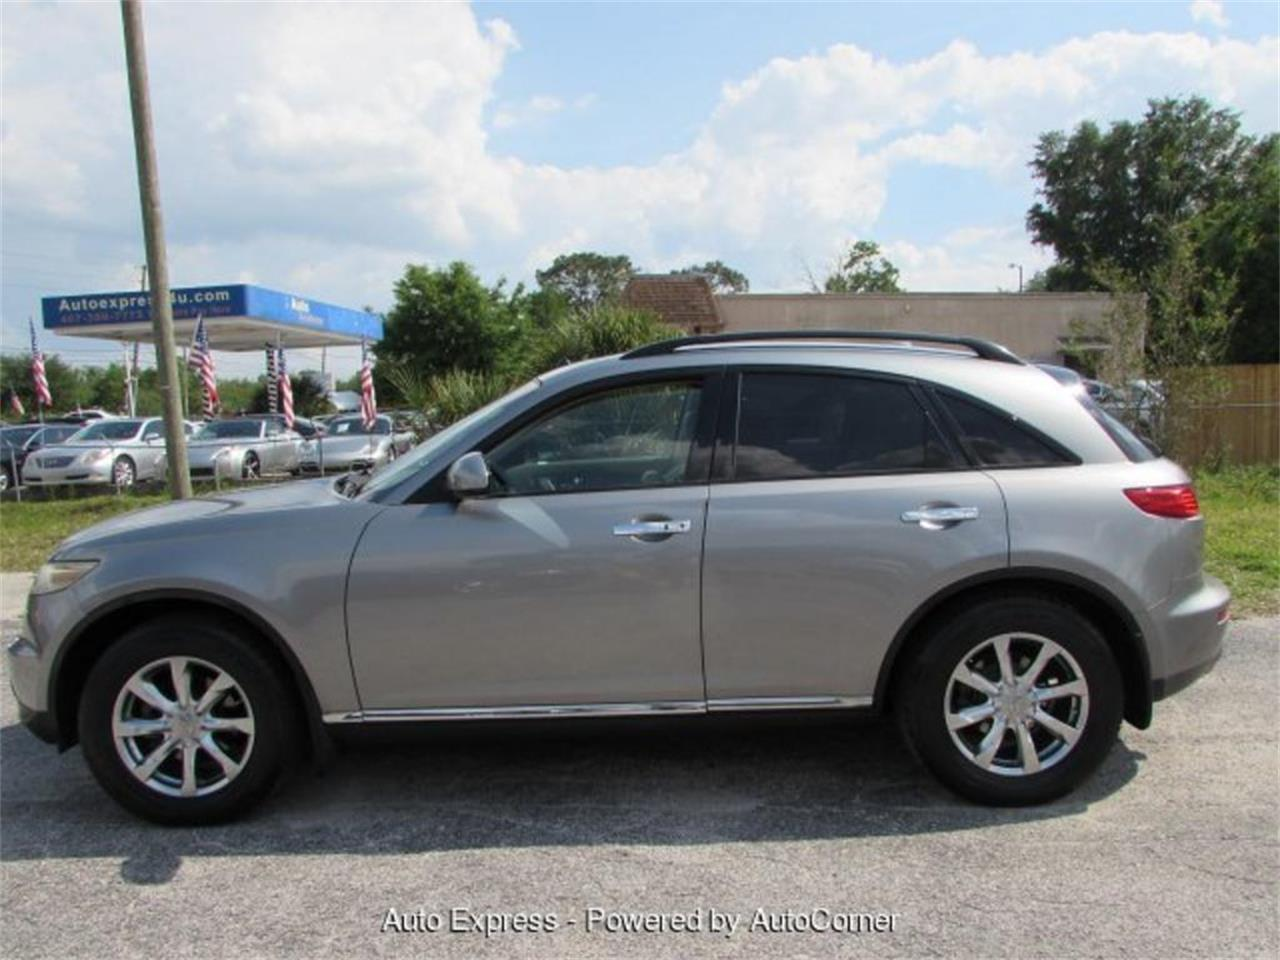 Large Picture of 2008 Infiniti FX35 located in Florida - $9,999.00 Offered by Auto Express - Q27X